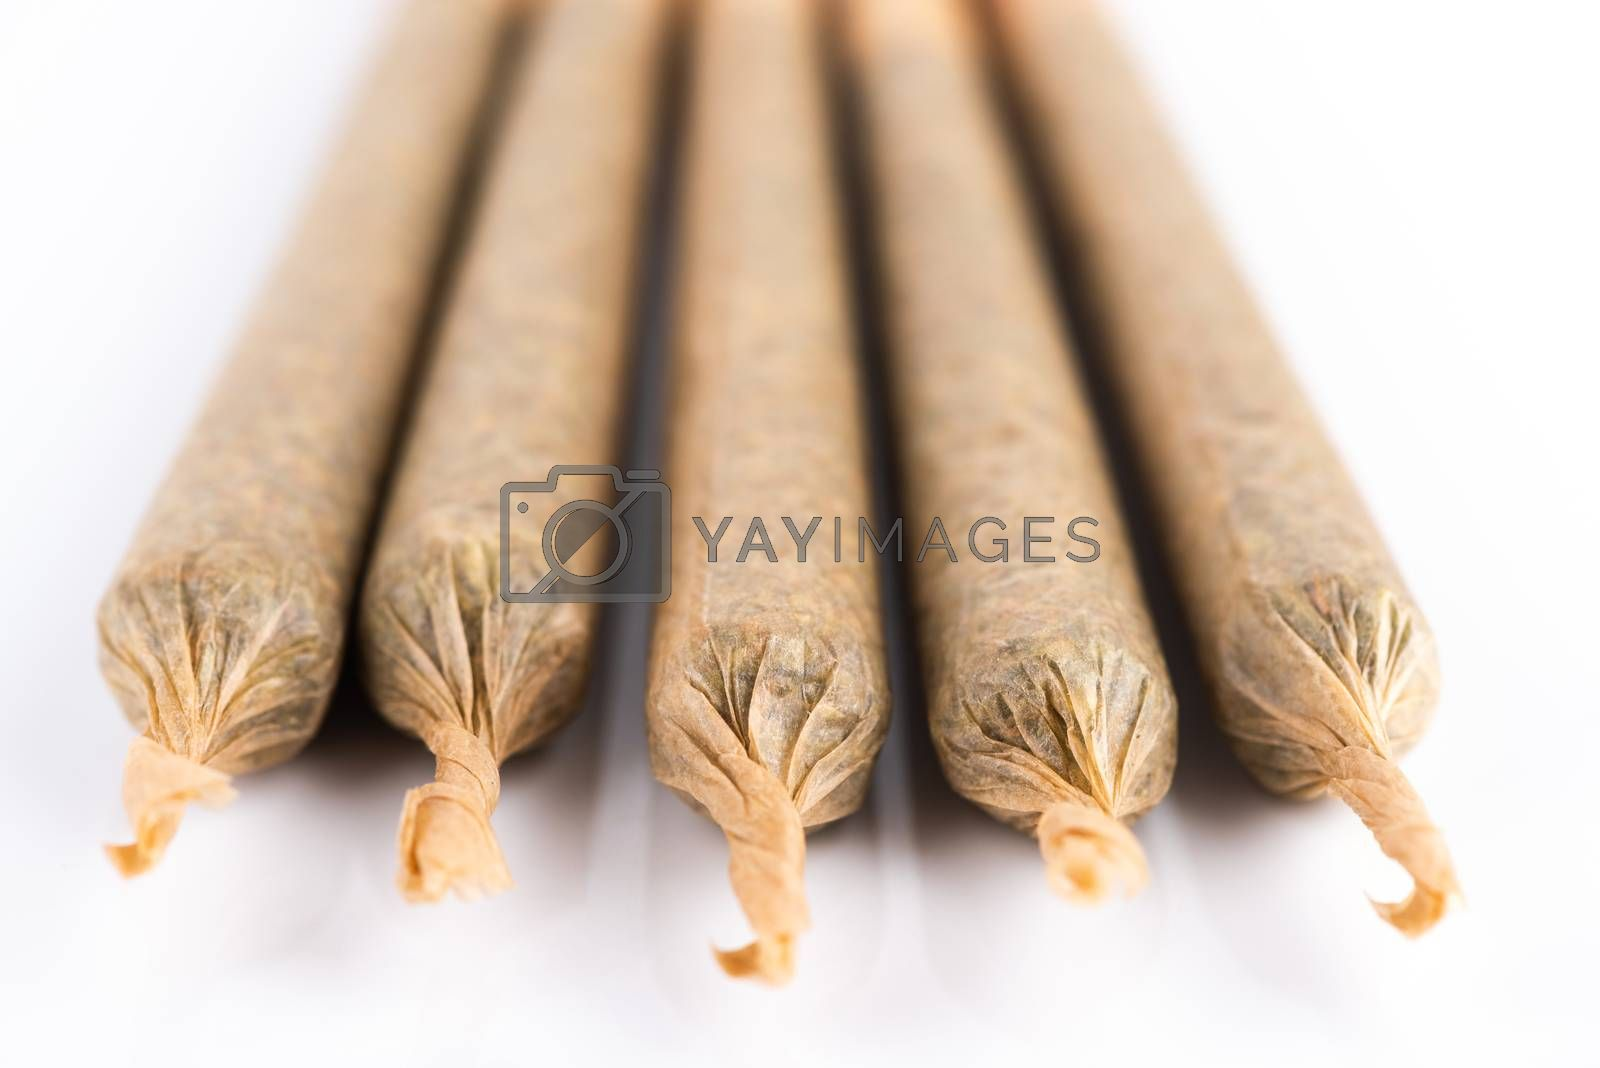 Medical Cannabis Marijuana Joints on White Background, Close Up View.